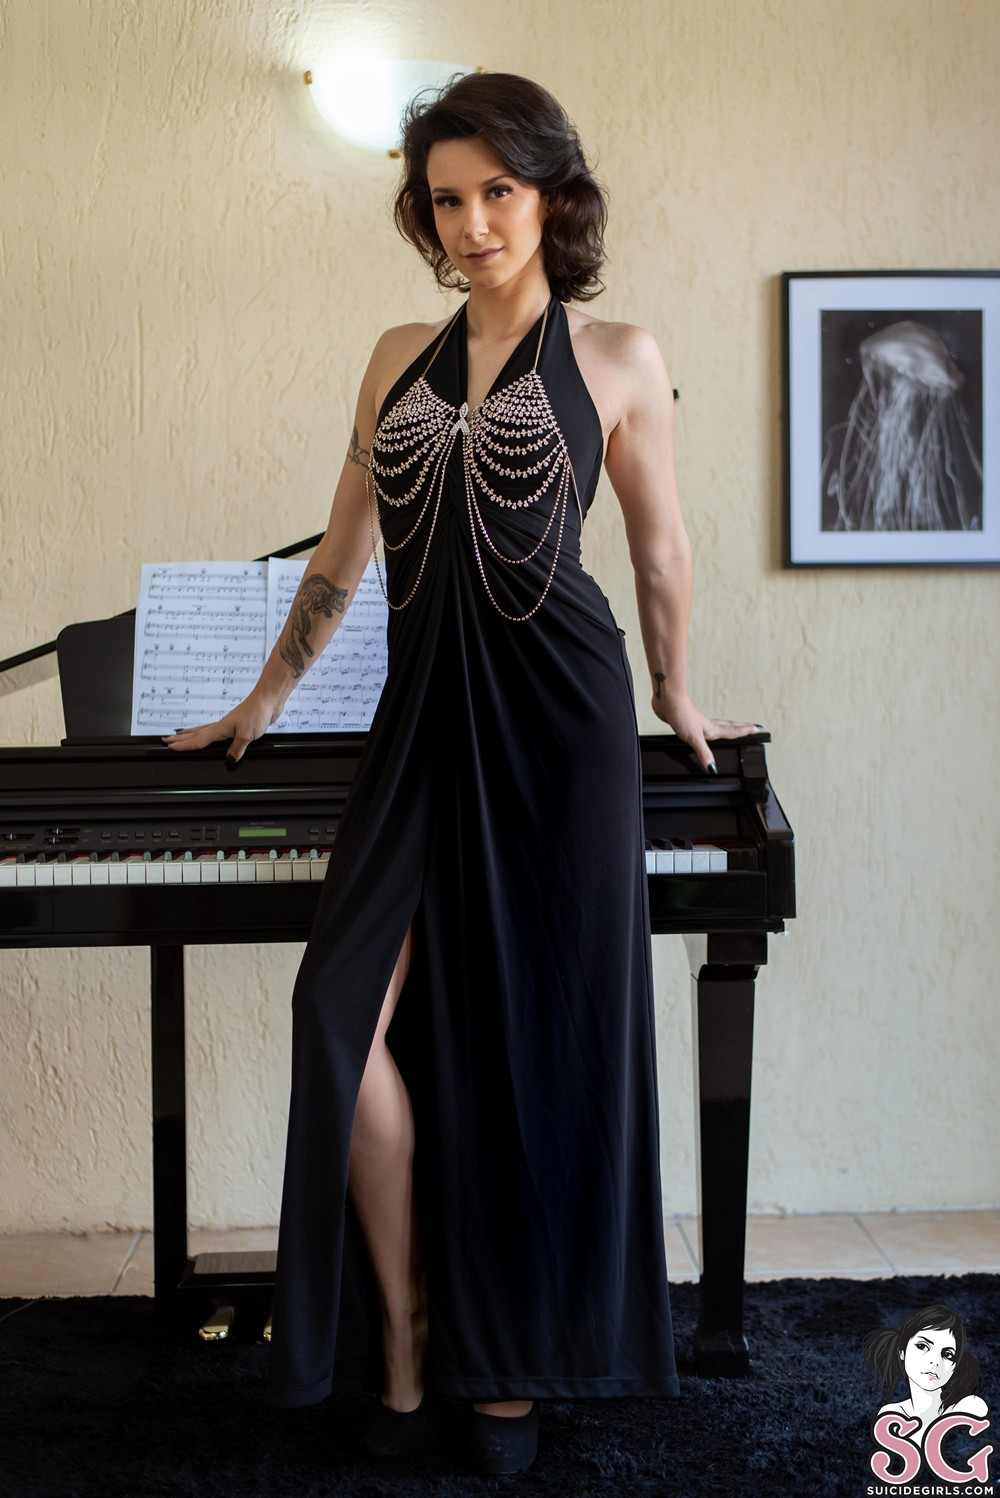 [Suicide Girls] Gweenblack - The Piano Room - 貼圖 - 歐美寫真 -